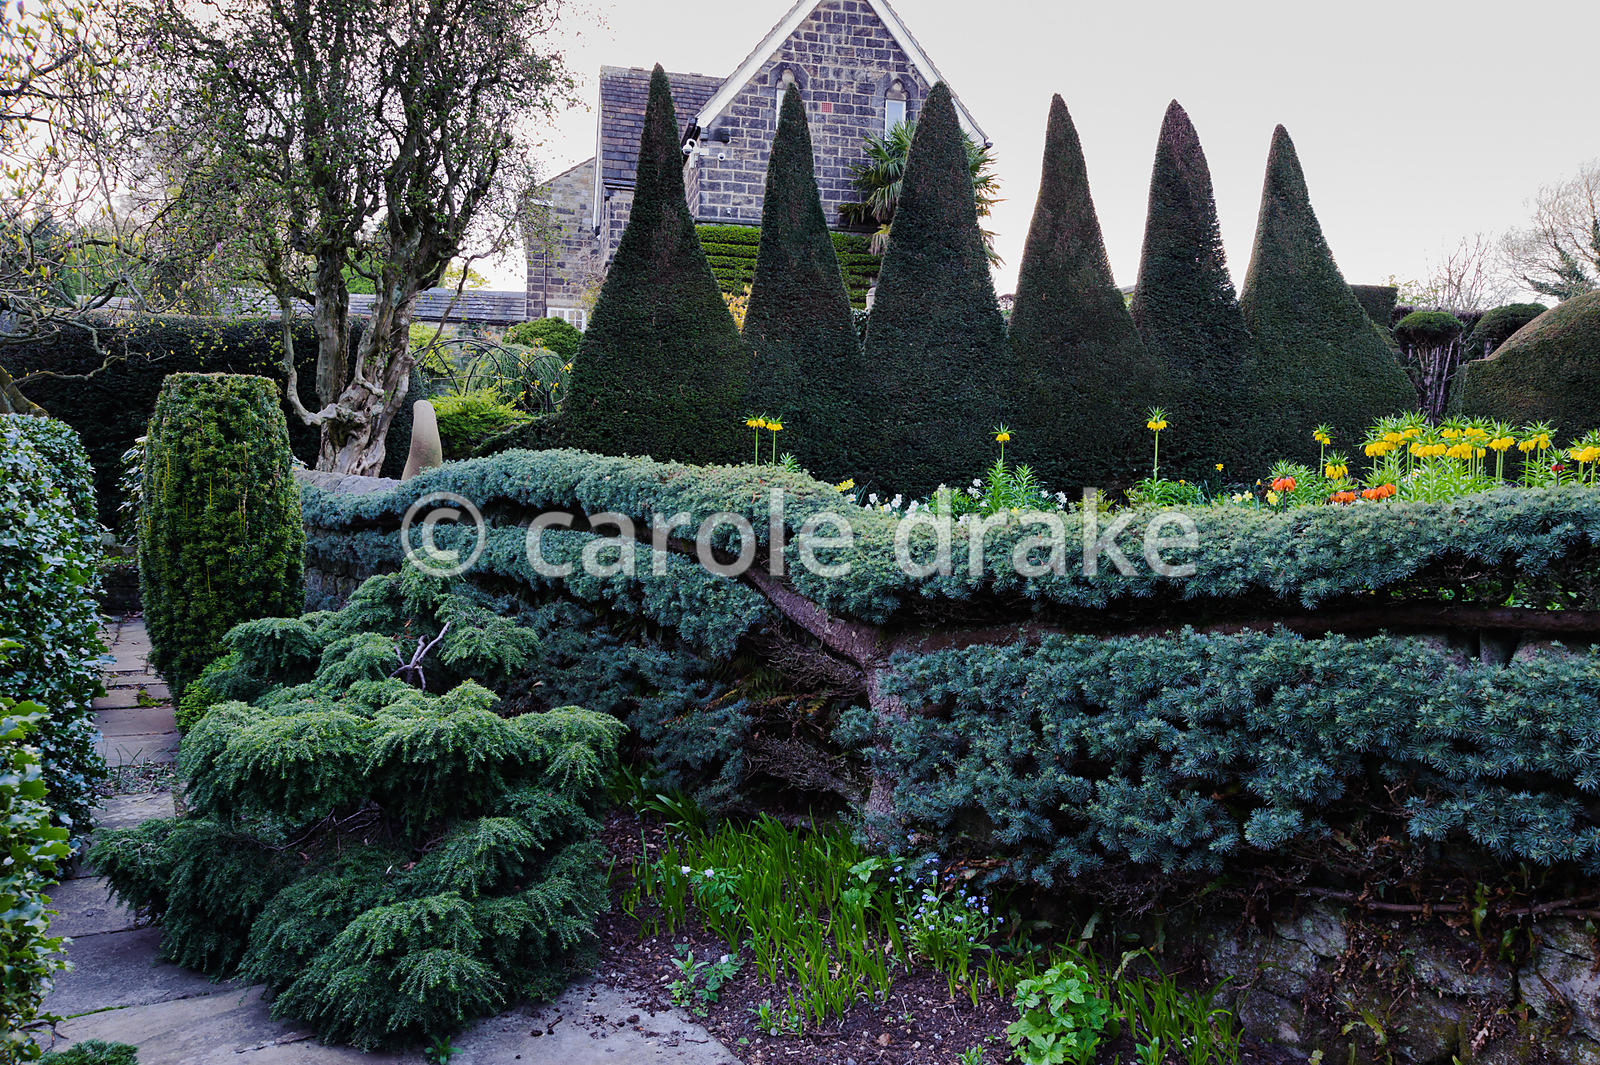 Espaliered cedar in the Pinetum, with serrated yew hedge in the Canal Garden beyond. York Gate Garden, Adel, Leeds, Yorkshire